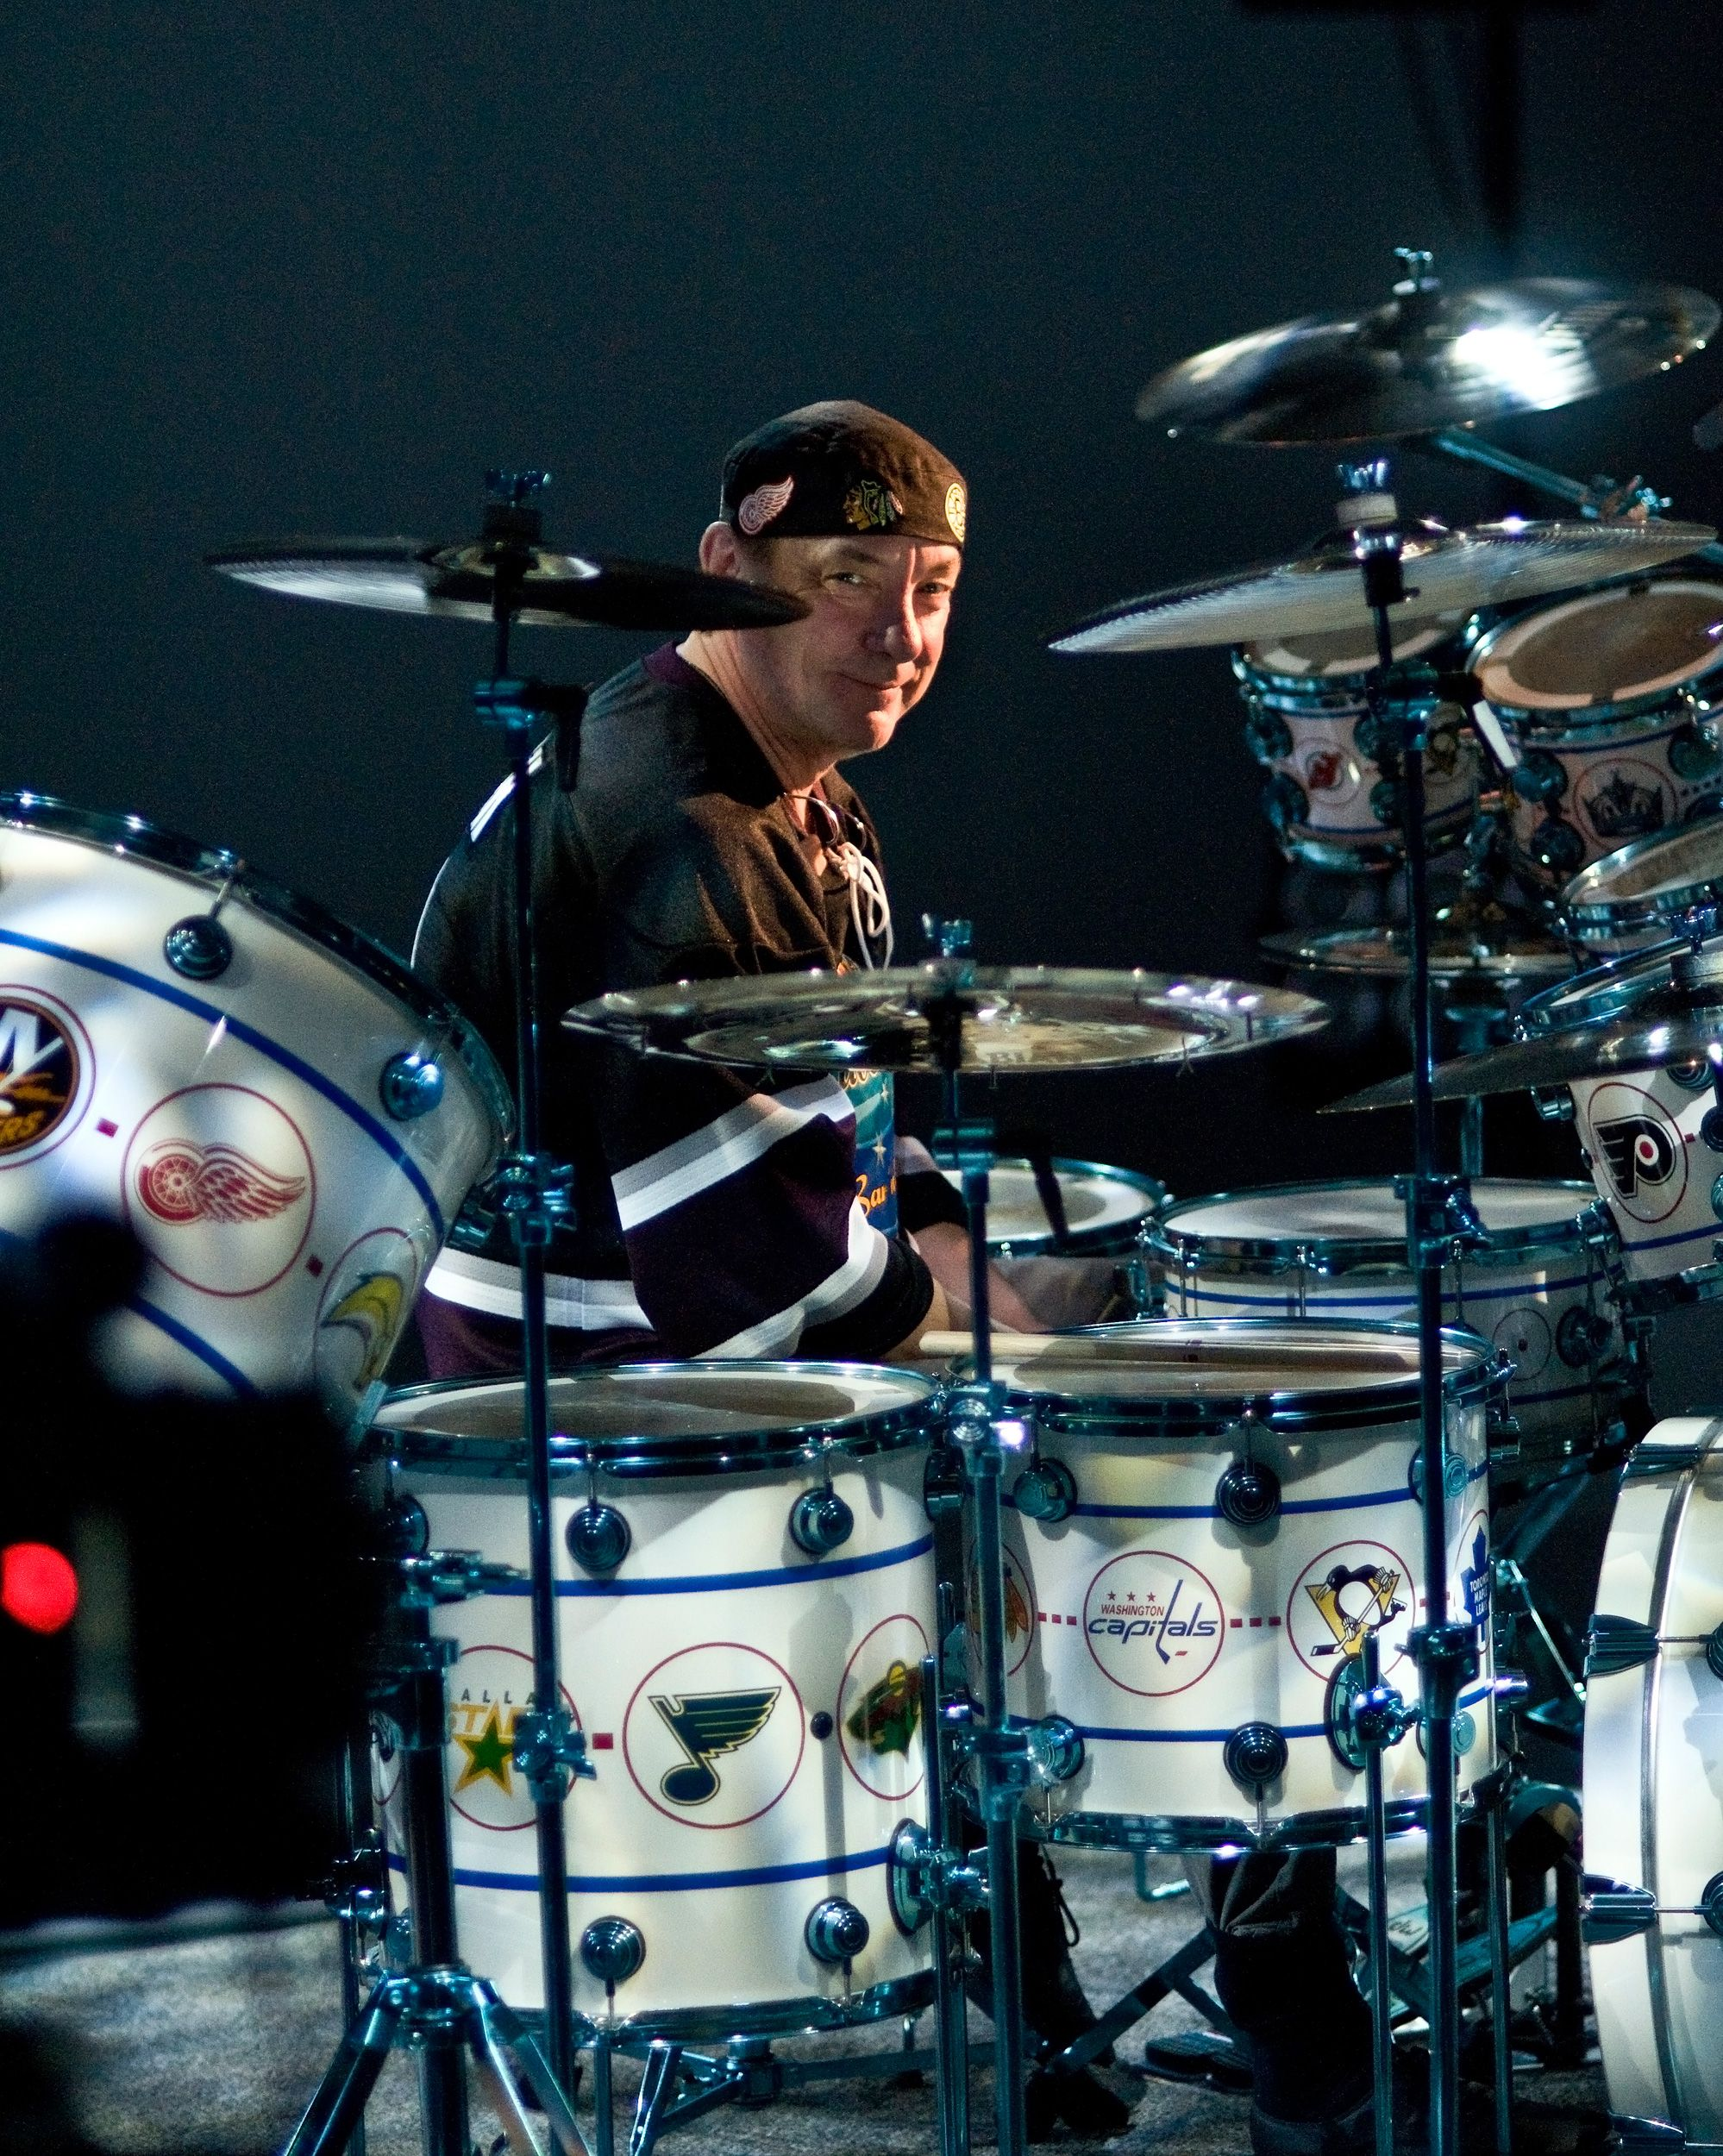 Pin By Hubert On Drums Drummers In 2020 With Images Neil